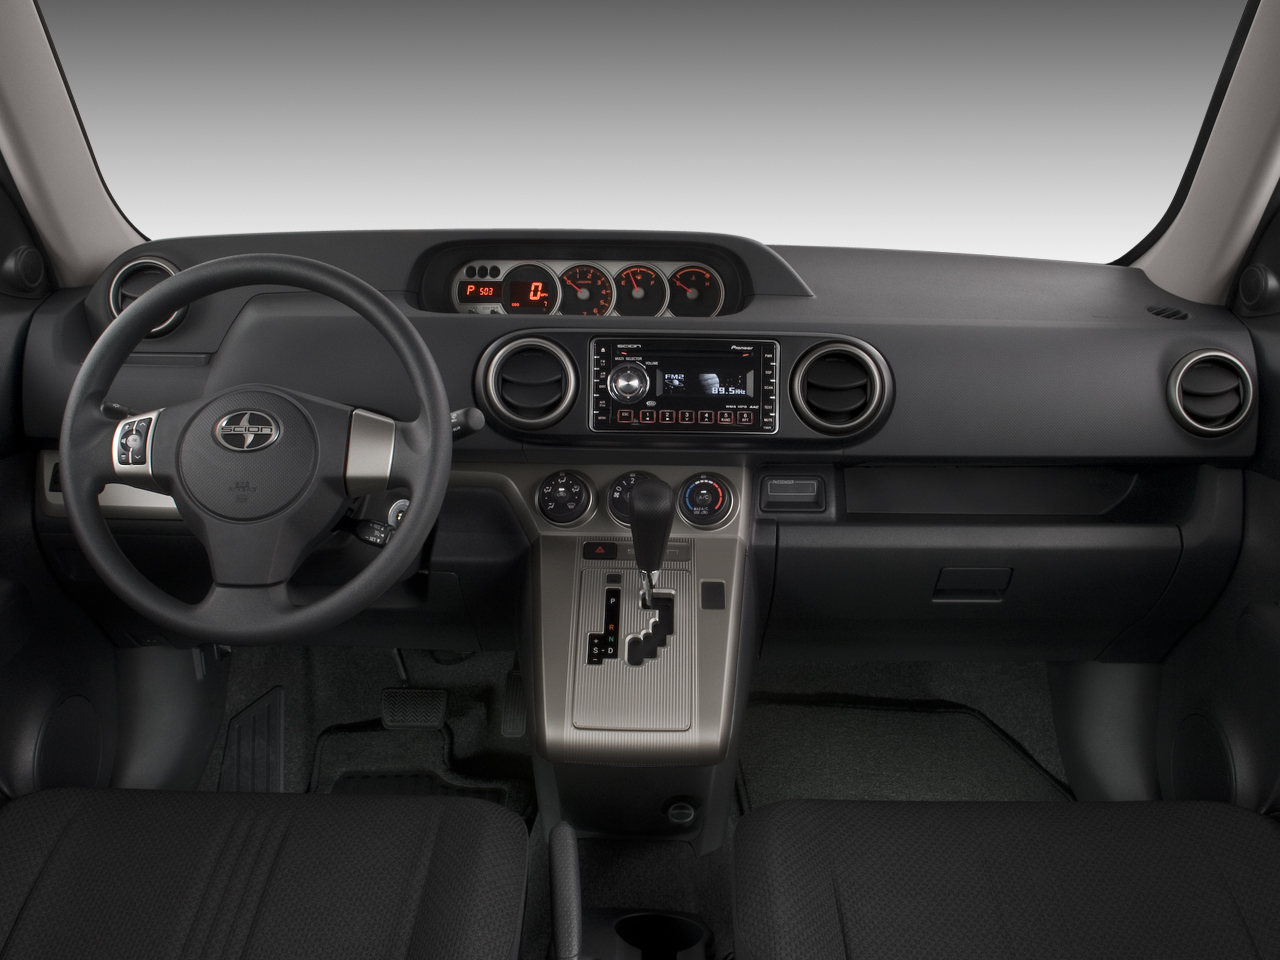 2008 scion xb release series 5 0 - latest news  reviews  and auto show coverage